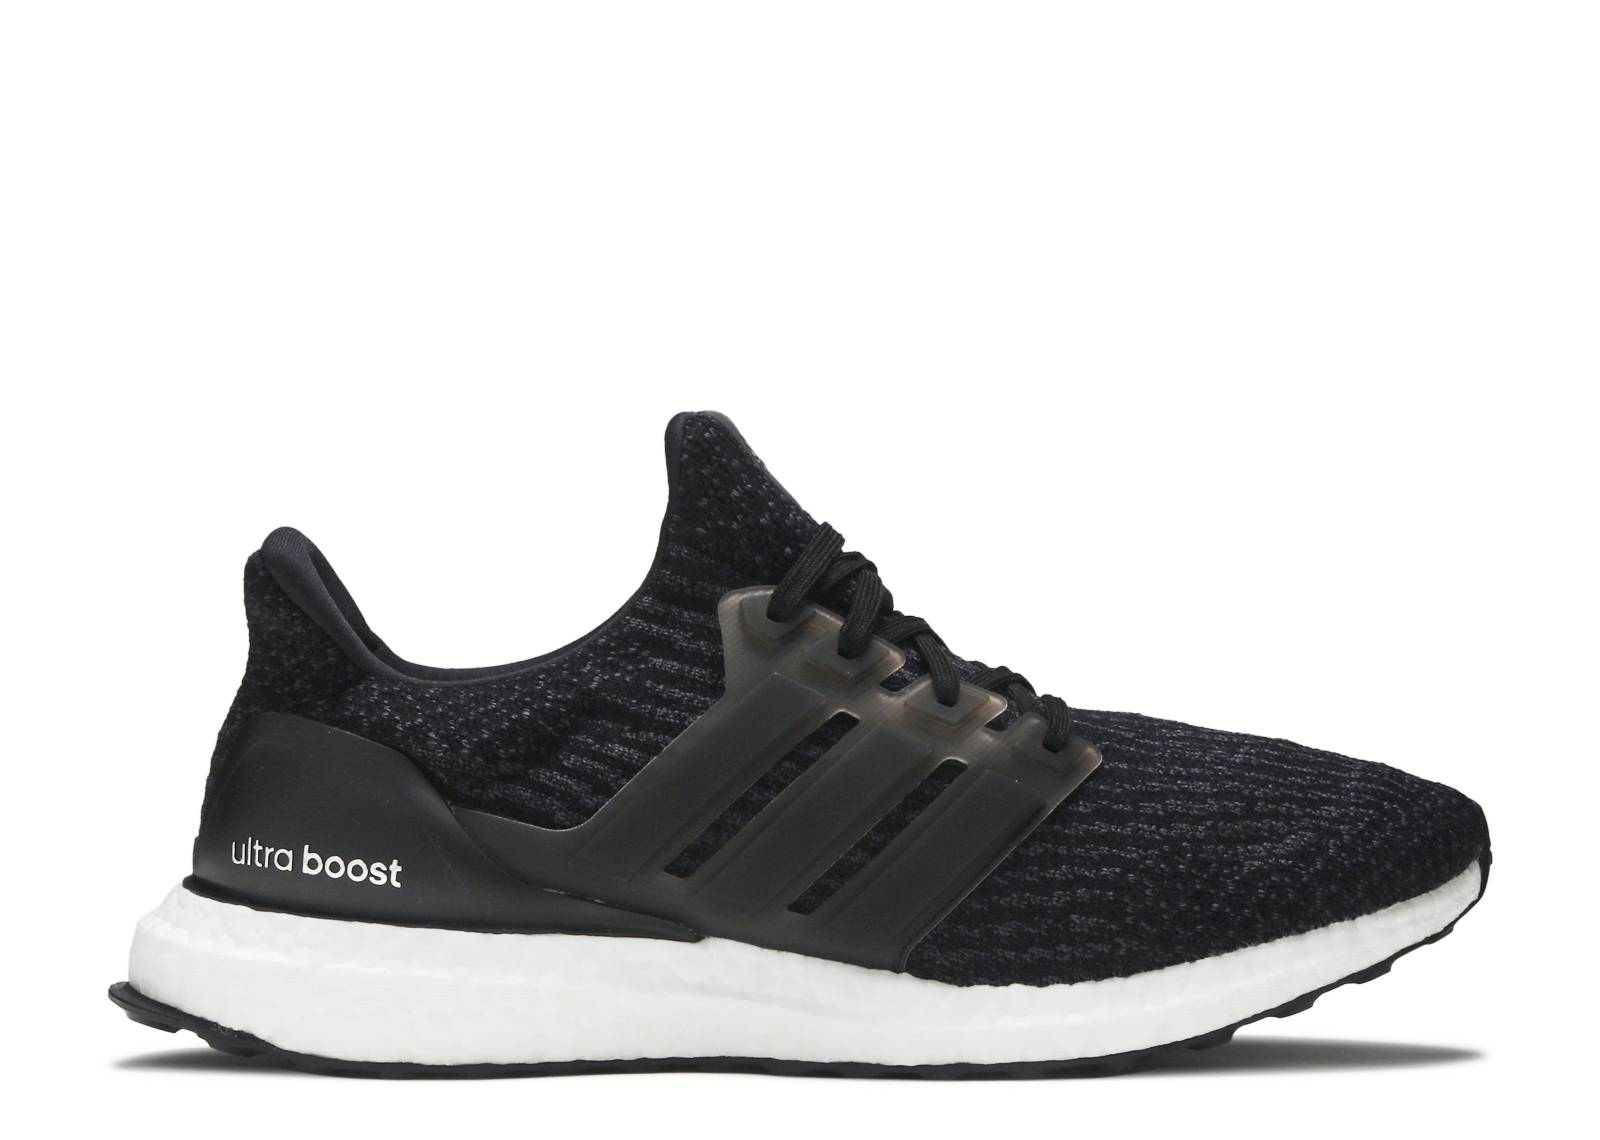 ultraboost w adidas s80682 black white flight club. Black Bedroom Furniture Sets. Home Design Ideas